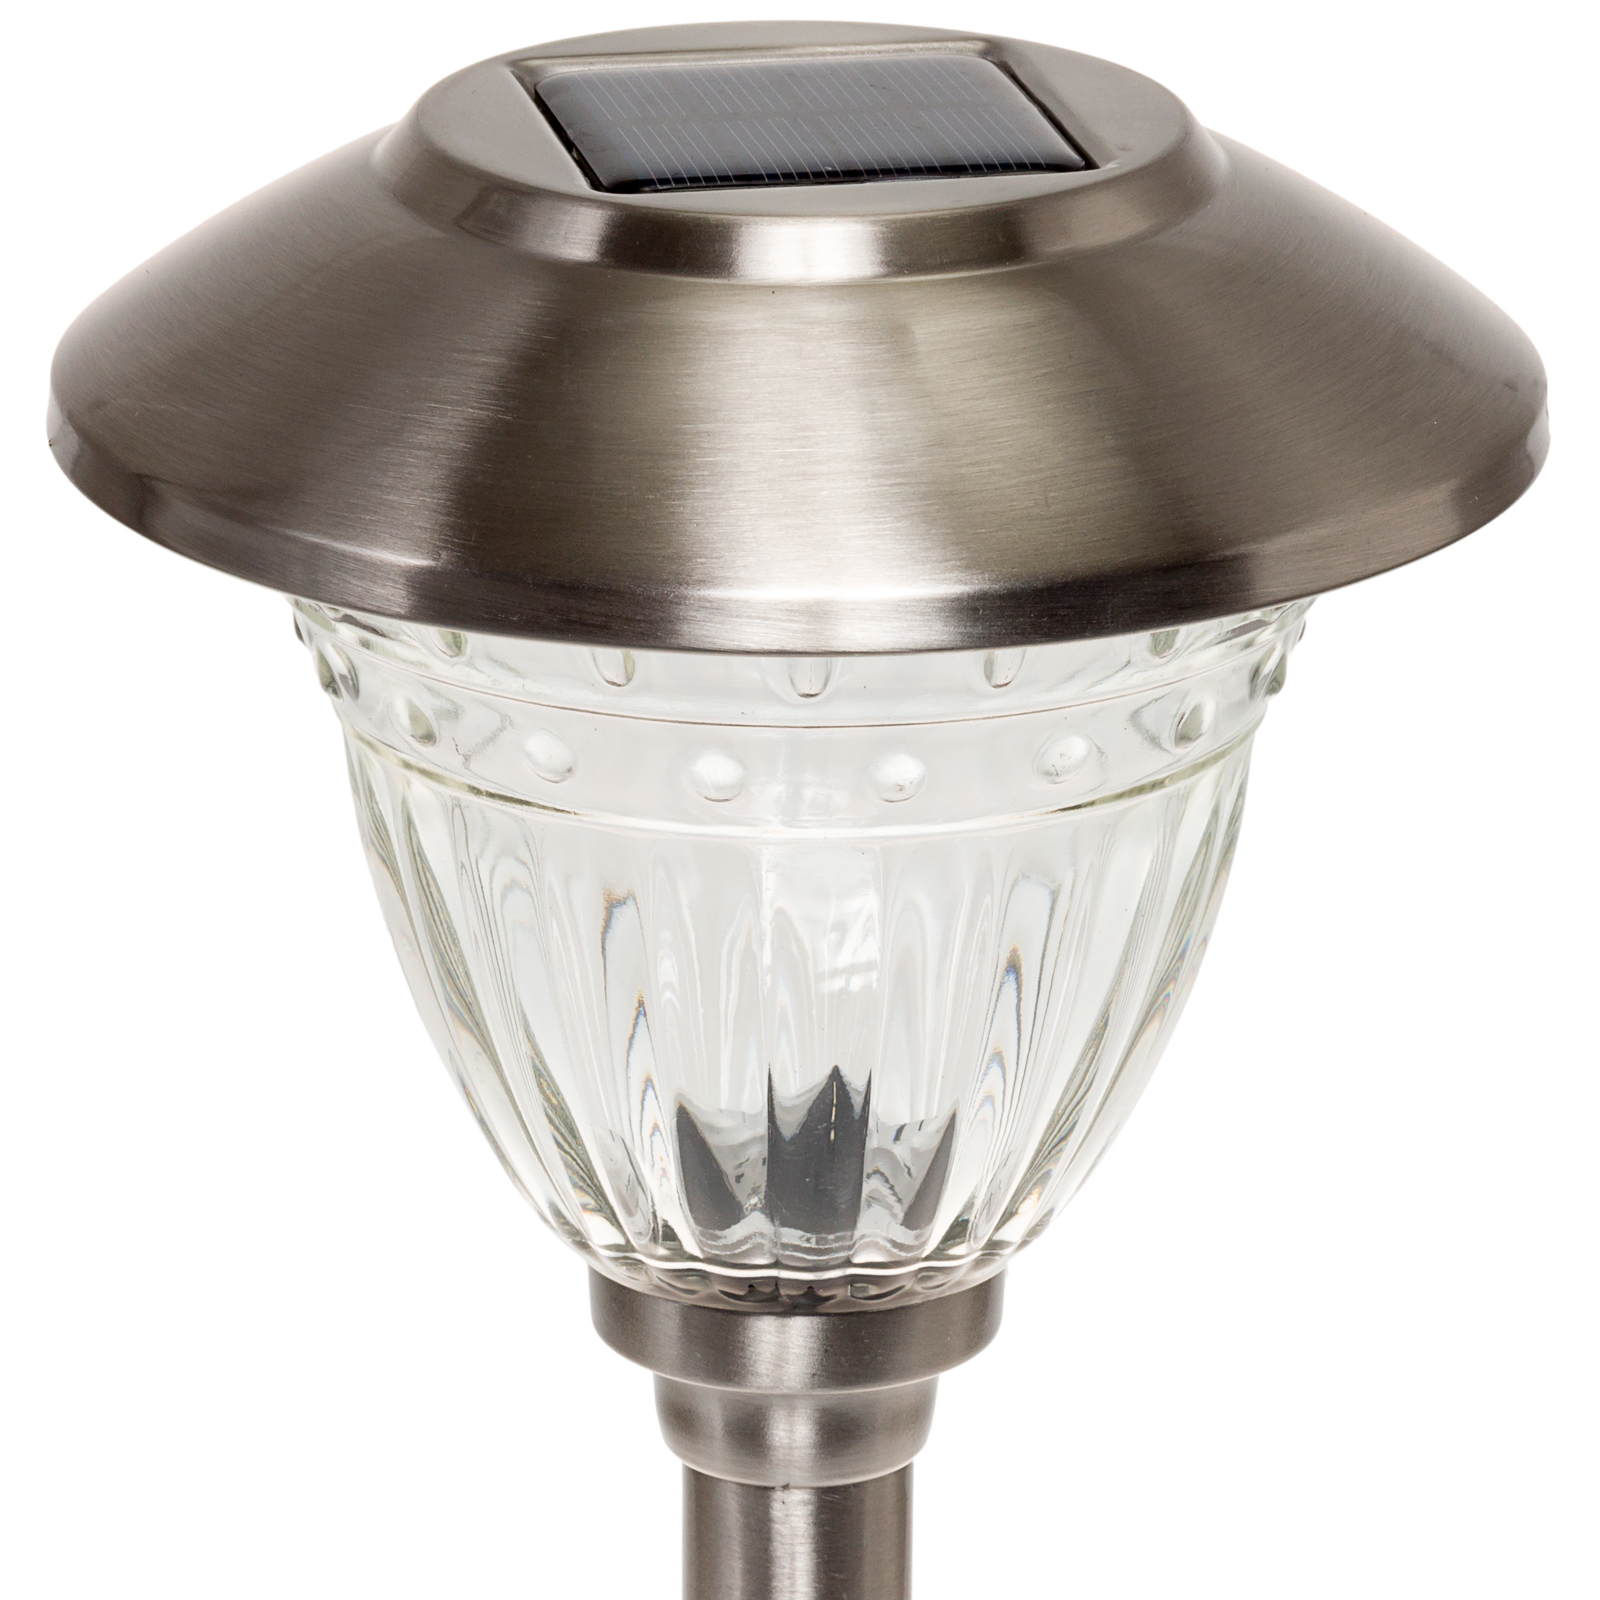 Image Result For Energizer Solar Landscape Light Set